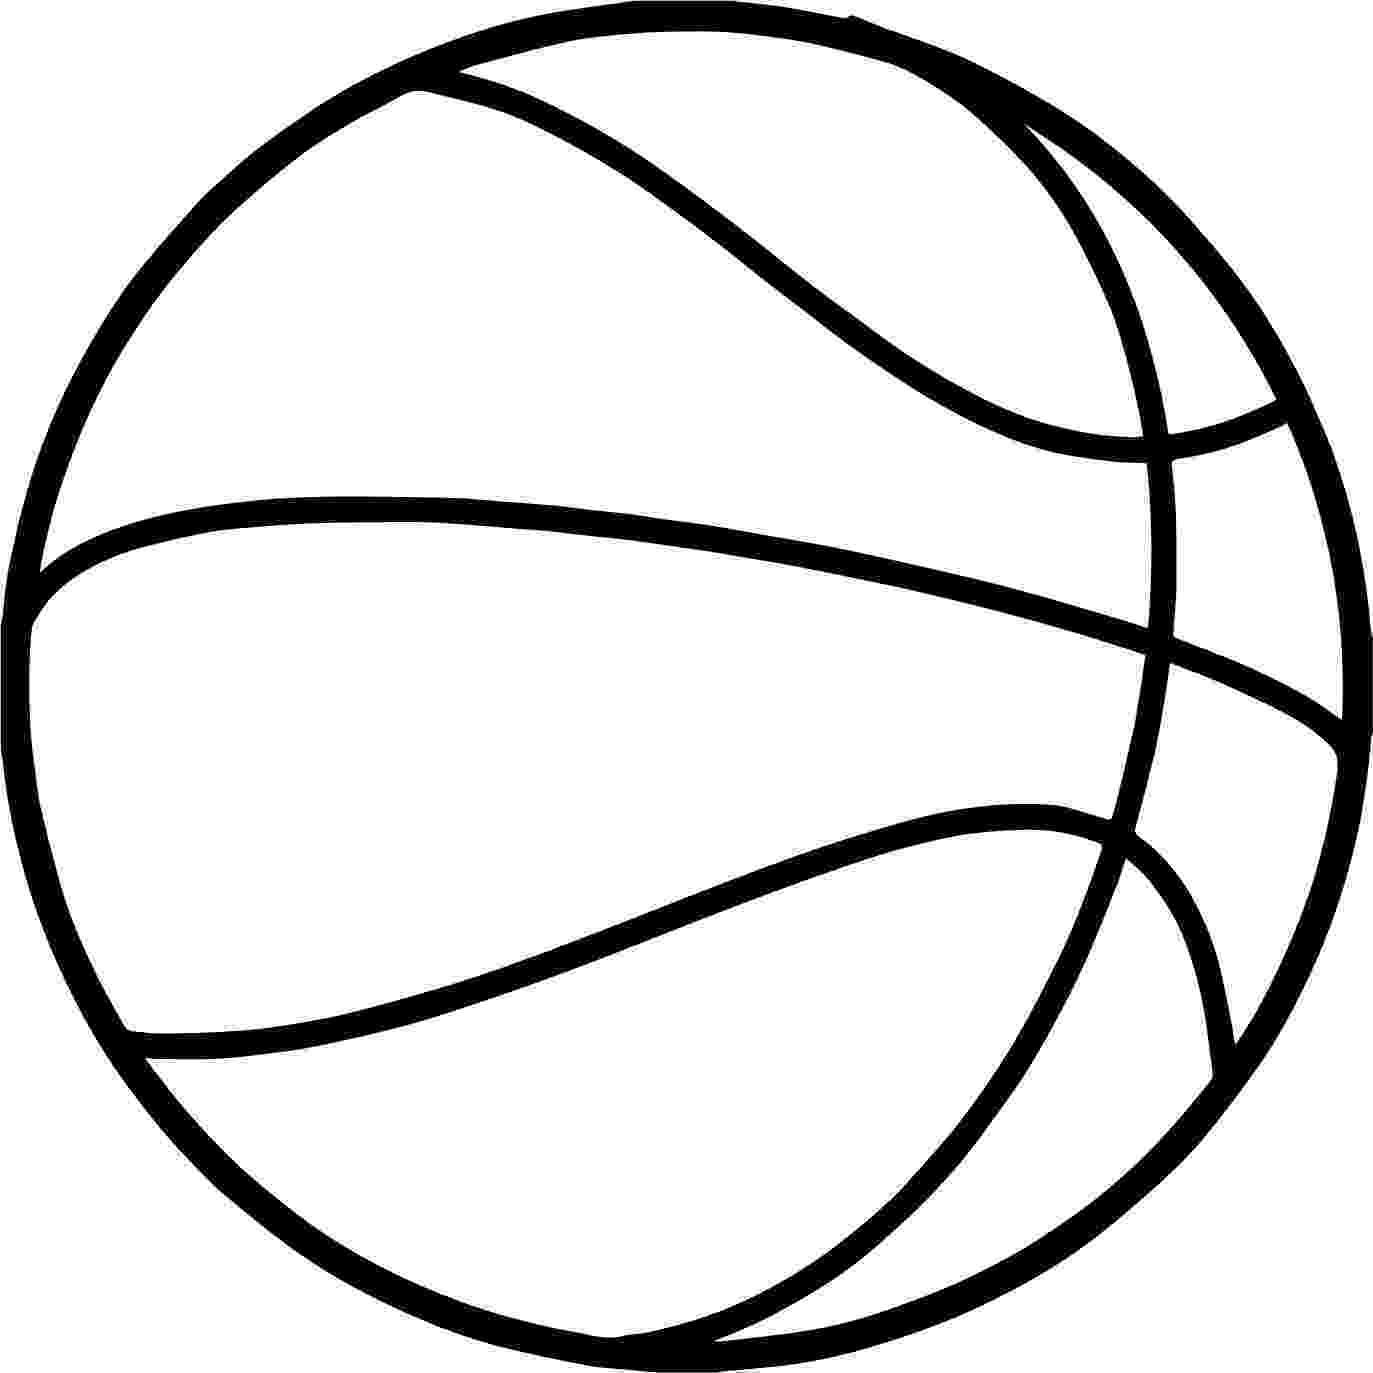 ball coloring pages fine basketball ball coloring page wecoloringpagecom coloring pages ball